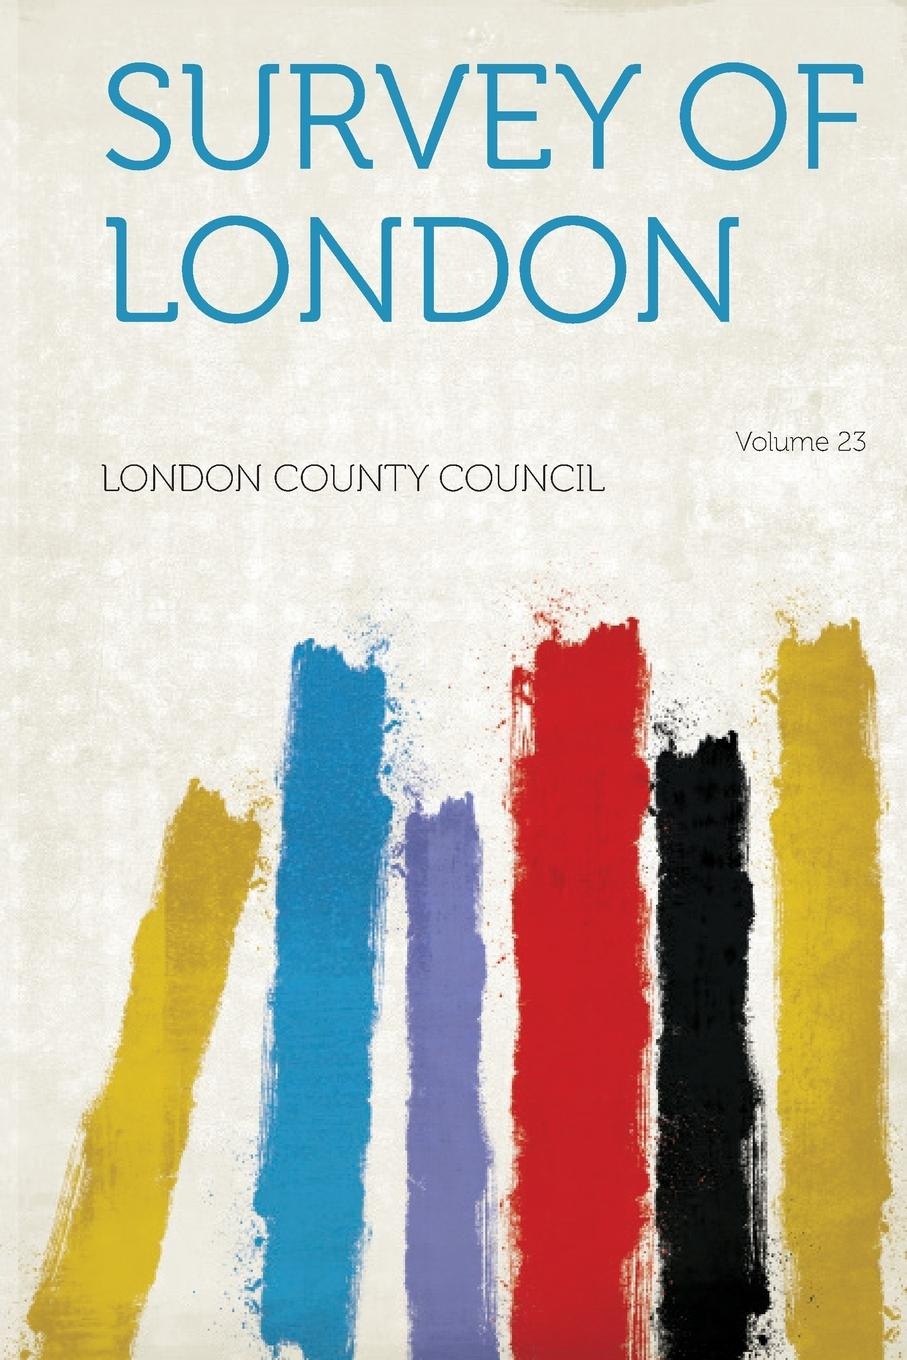 London County Council Survey of London Volume 23